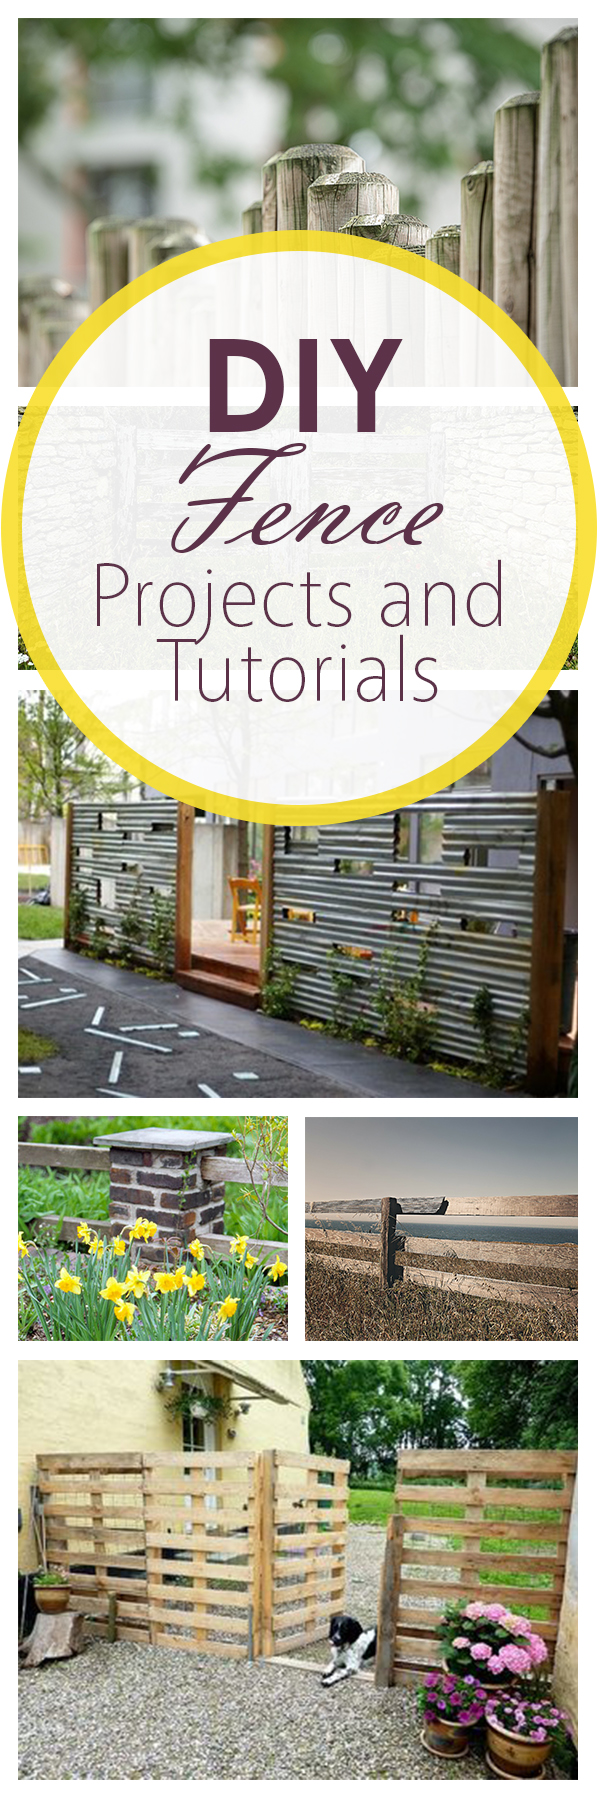 DIY Fence Projects and Tutorials (1)